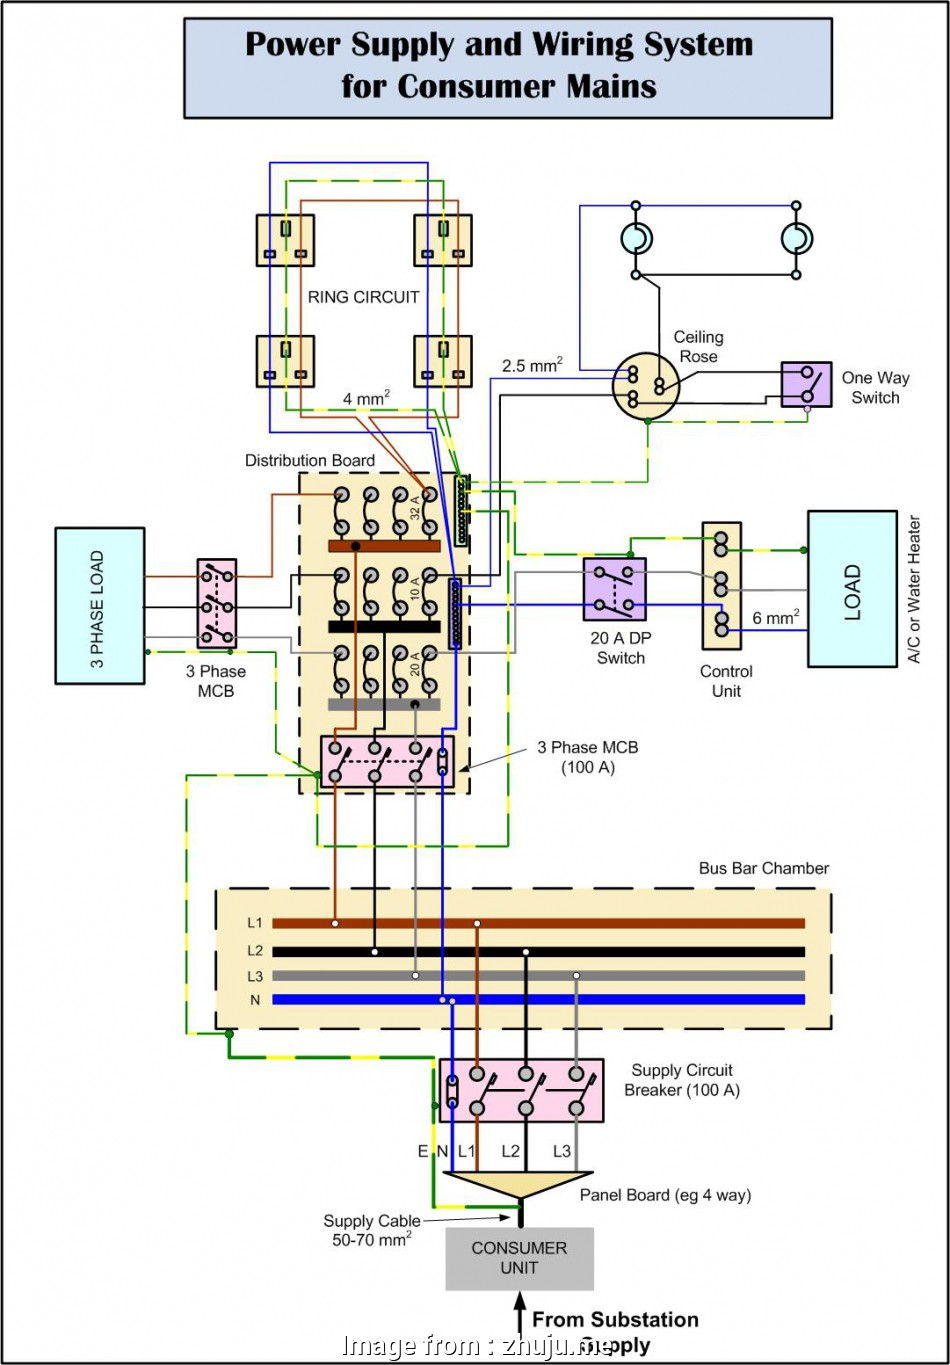 electrical wiring diagram wikipedia Electrical Lighting Wiring Diagrams WIRING DIAGRAM Throughout What Is Diagram 12 Most Electrical Wiring Diagram Wikipedia Solutions